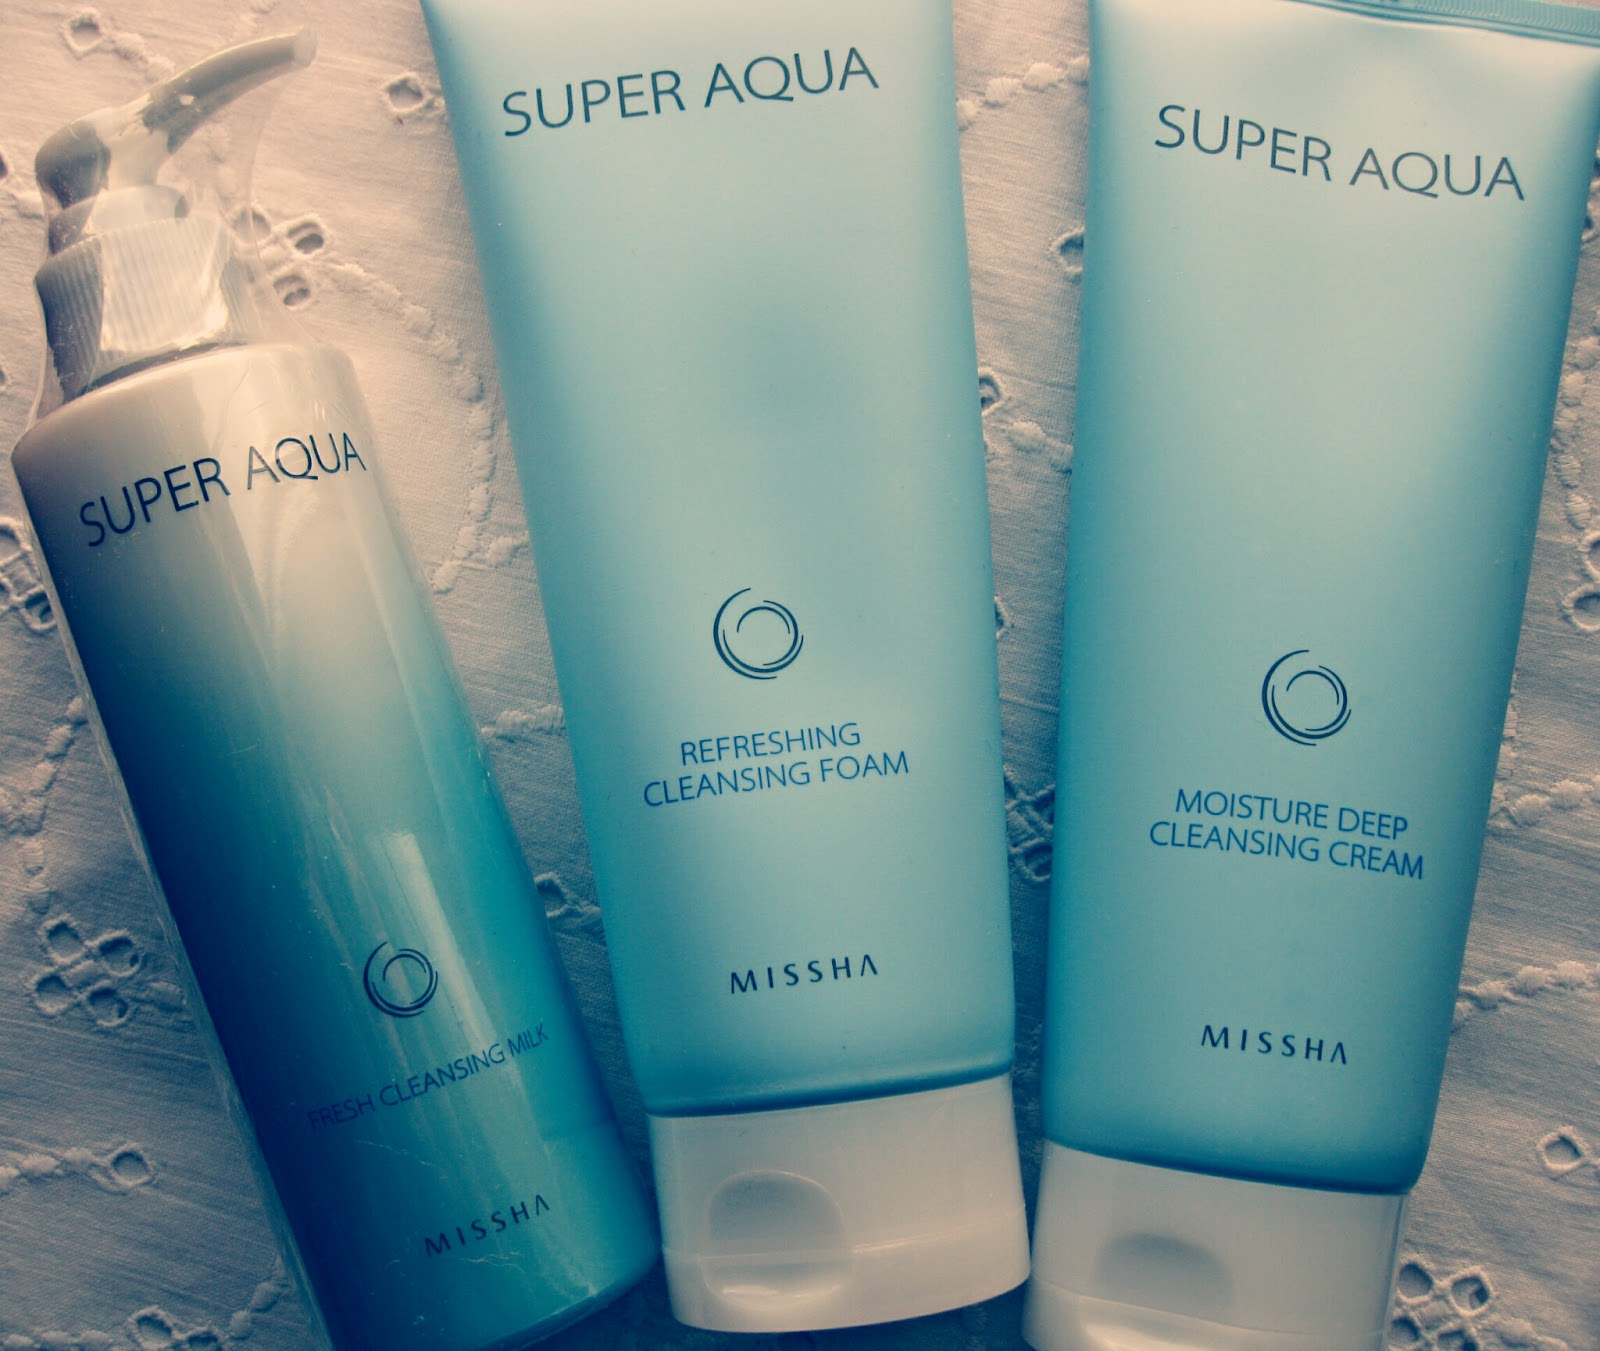 Gmarket haul MISSHA skincare makeup , Super aqua refreshing cleansing foam , Super Aqua Moisture Deep Cleansing Cream